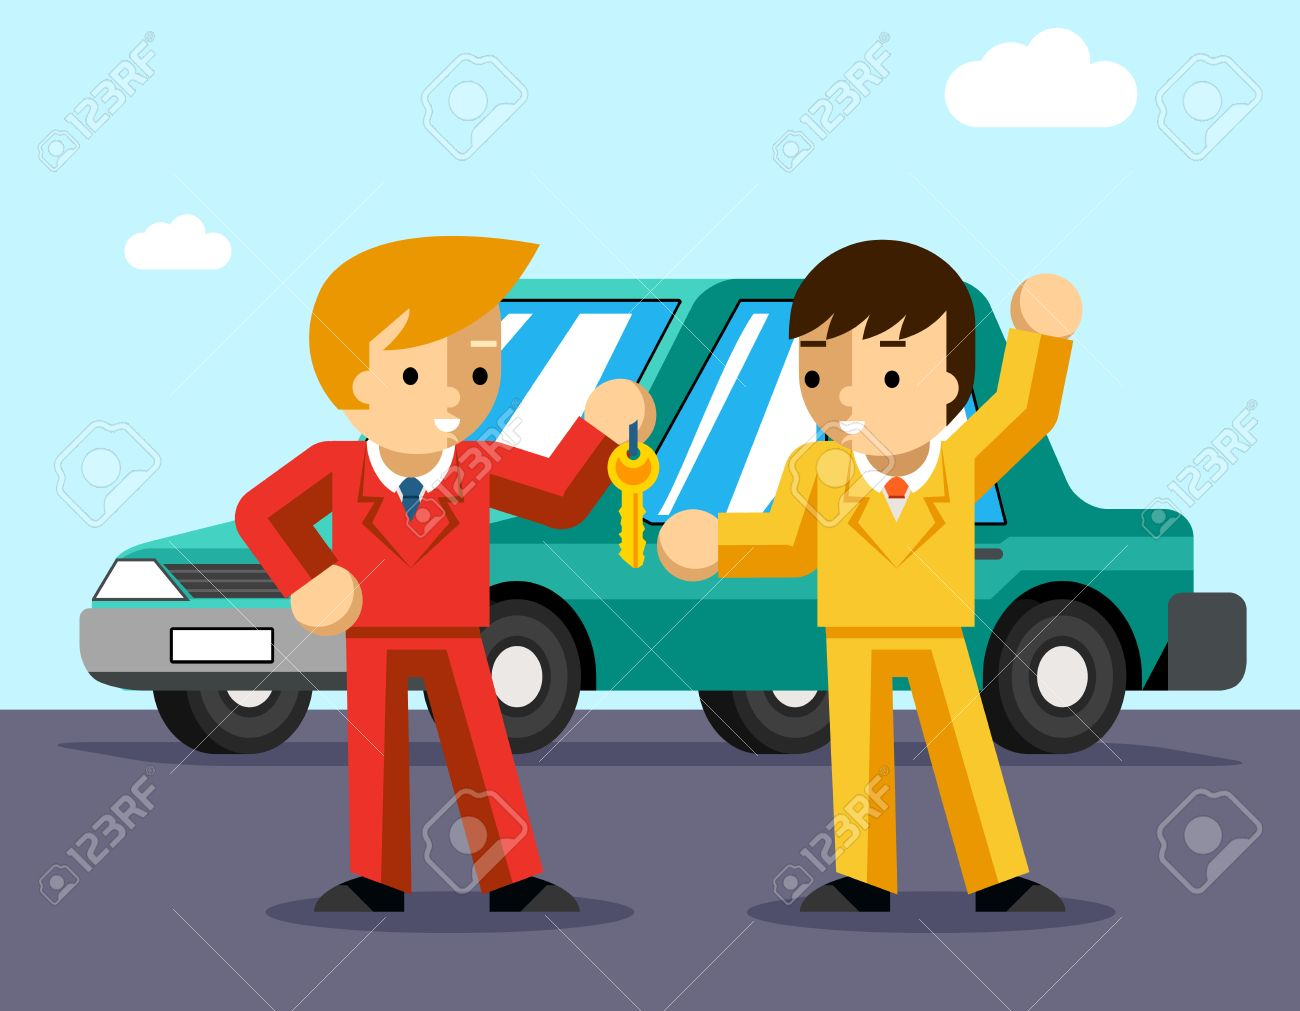 Buying car. Man gets keys to the car. Sale and giving, automobile dealer, people buy, success owner or driving. Vector illustration - 43675982